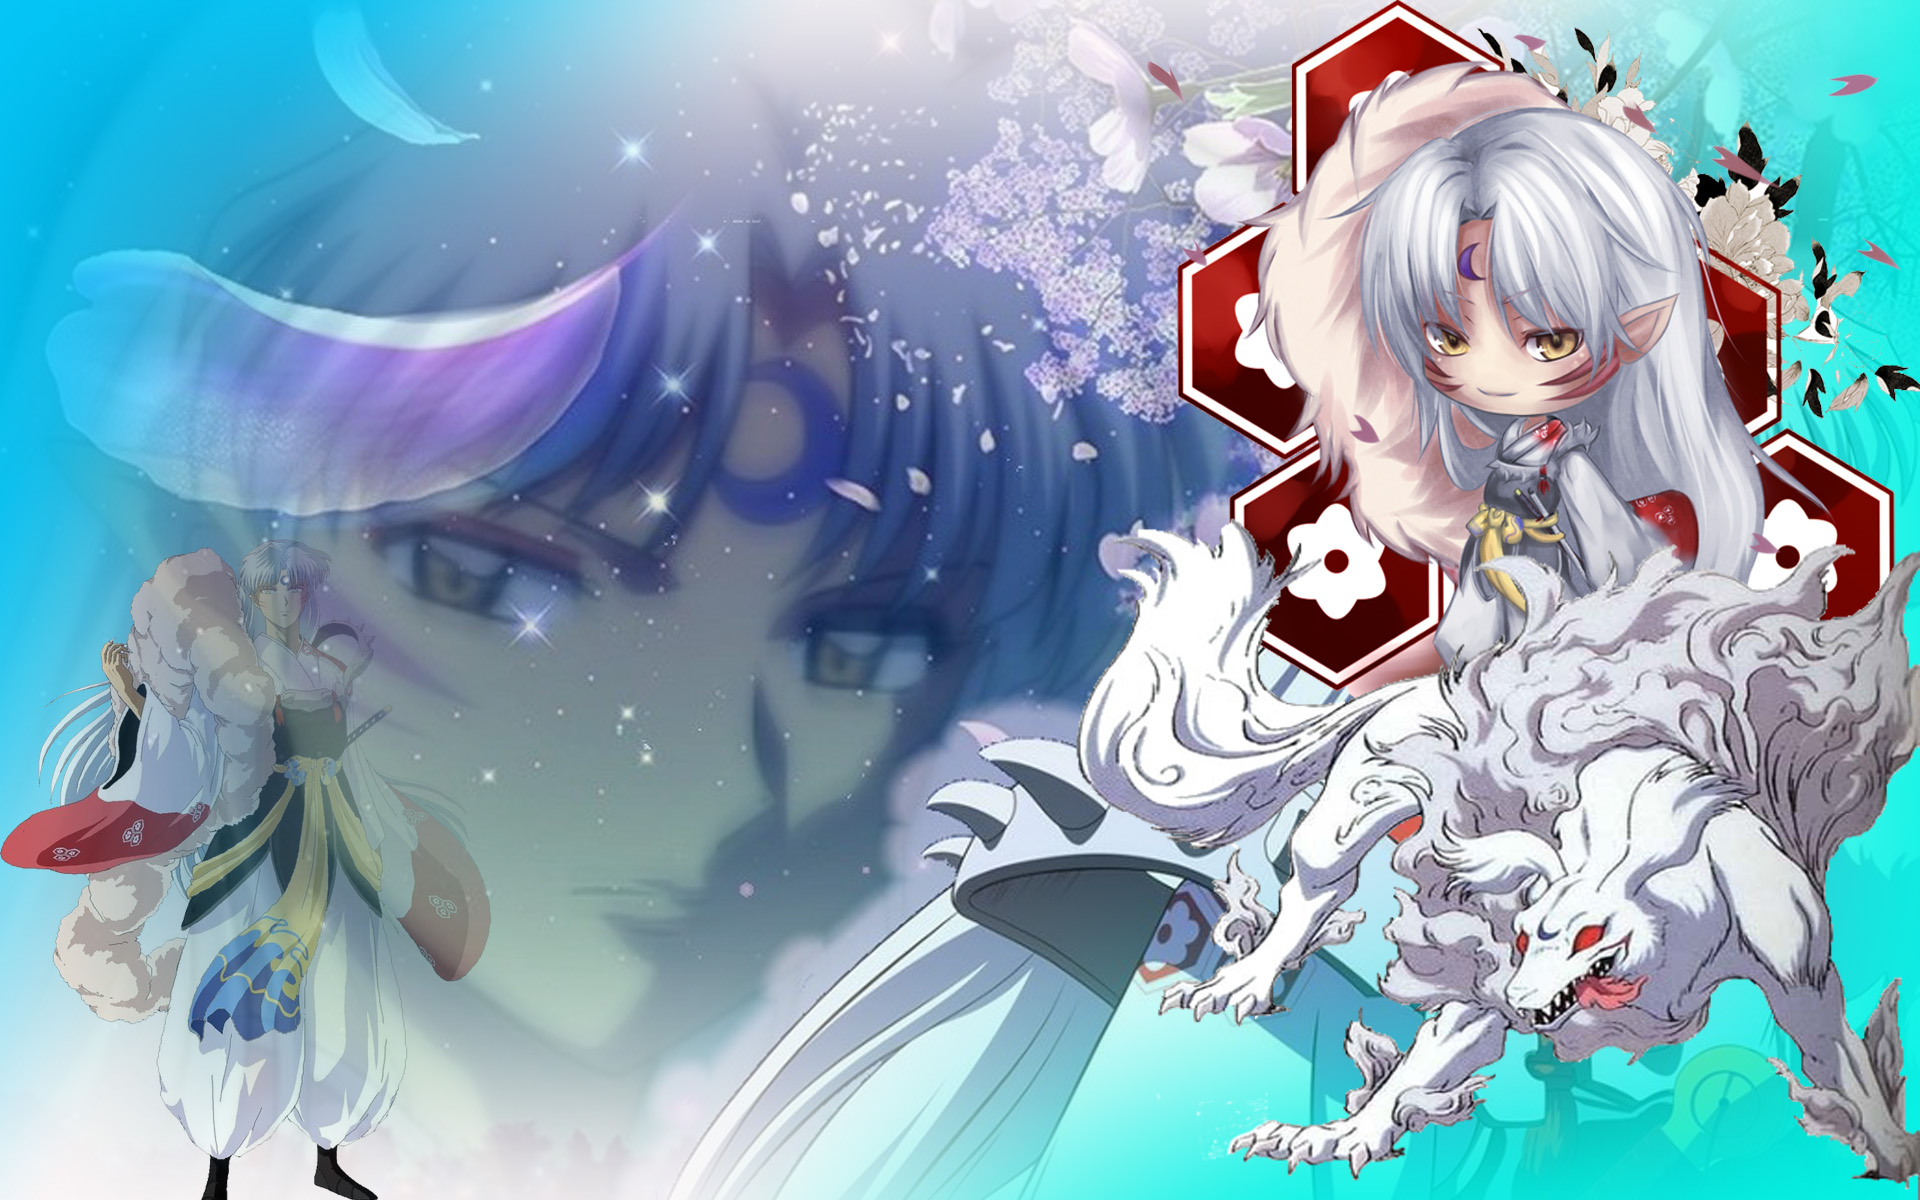 sesshomaru bakground by darkprinceofpersia1 on deviantart